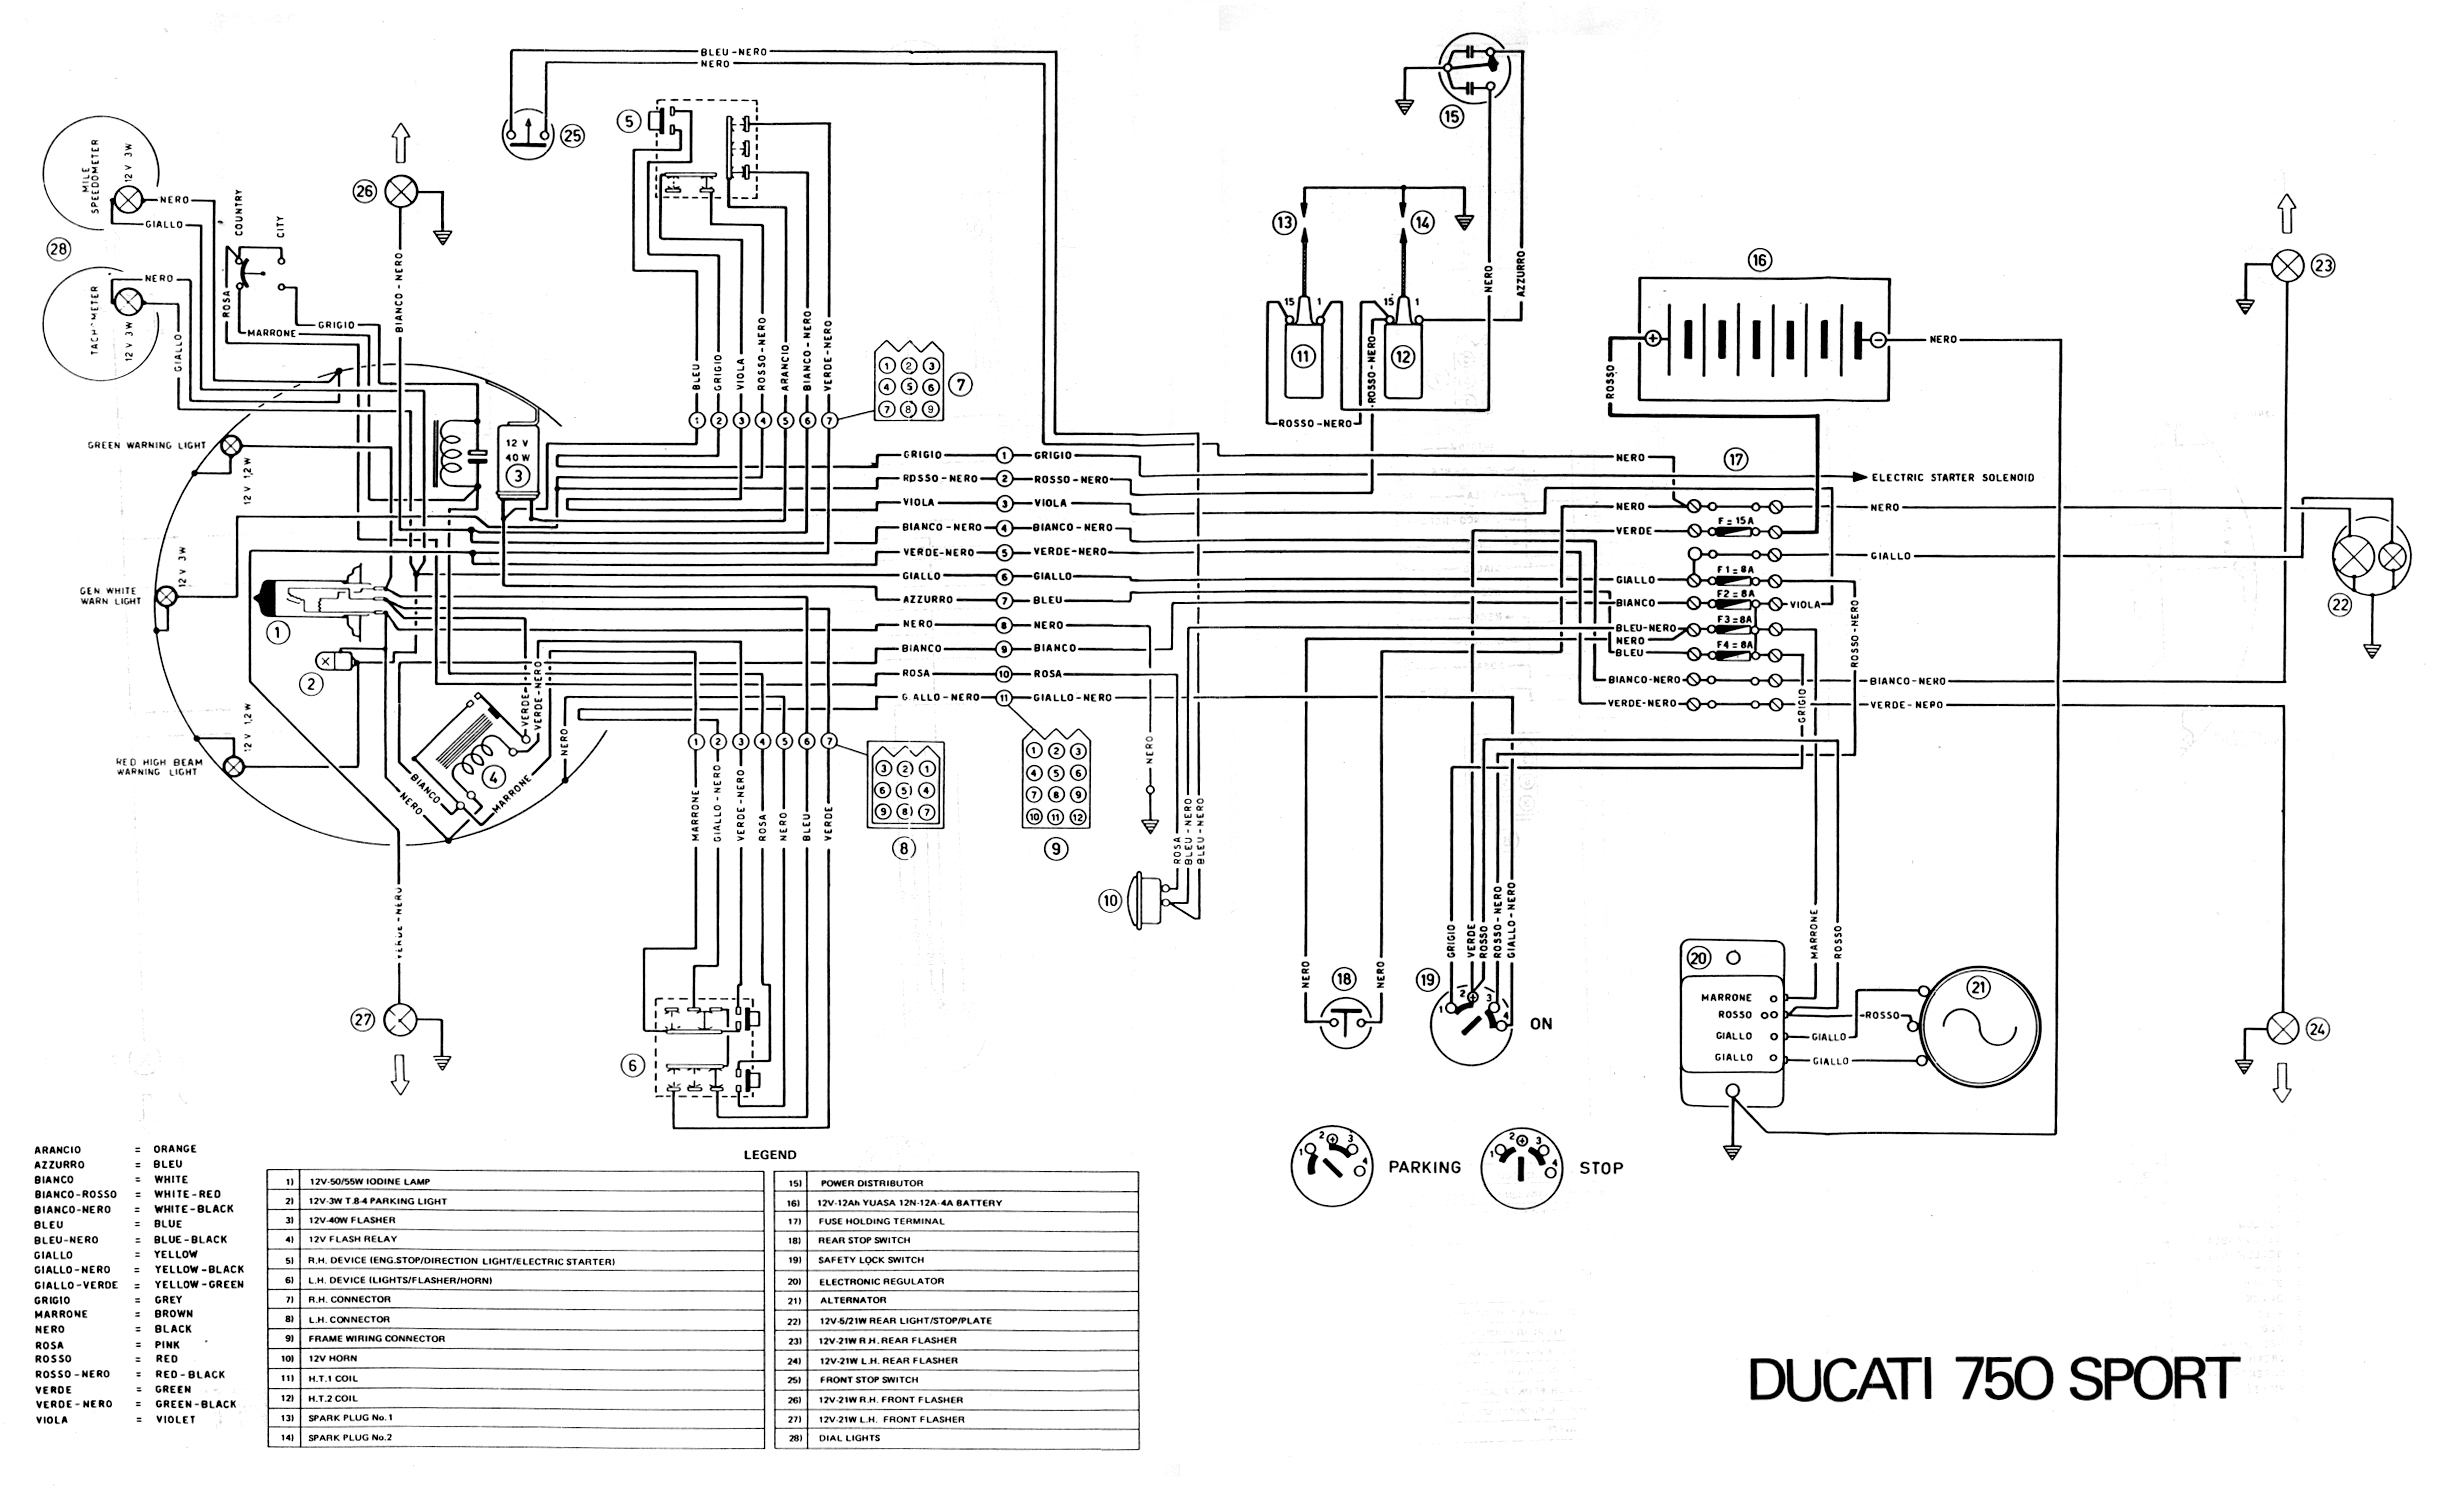 Ducati 750 1974 Sport Schema electrica PDF Download